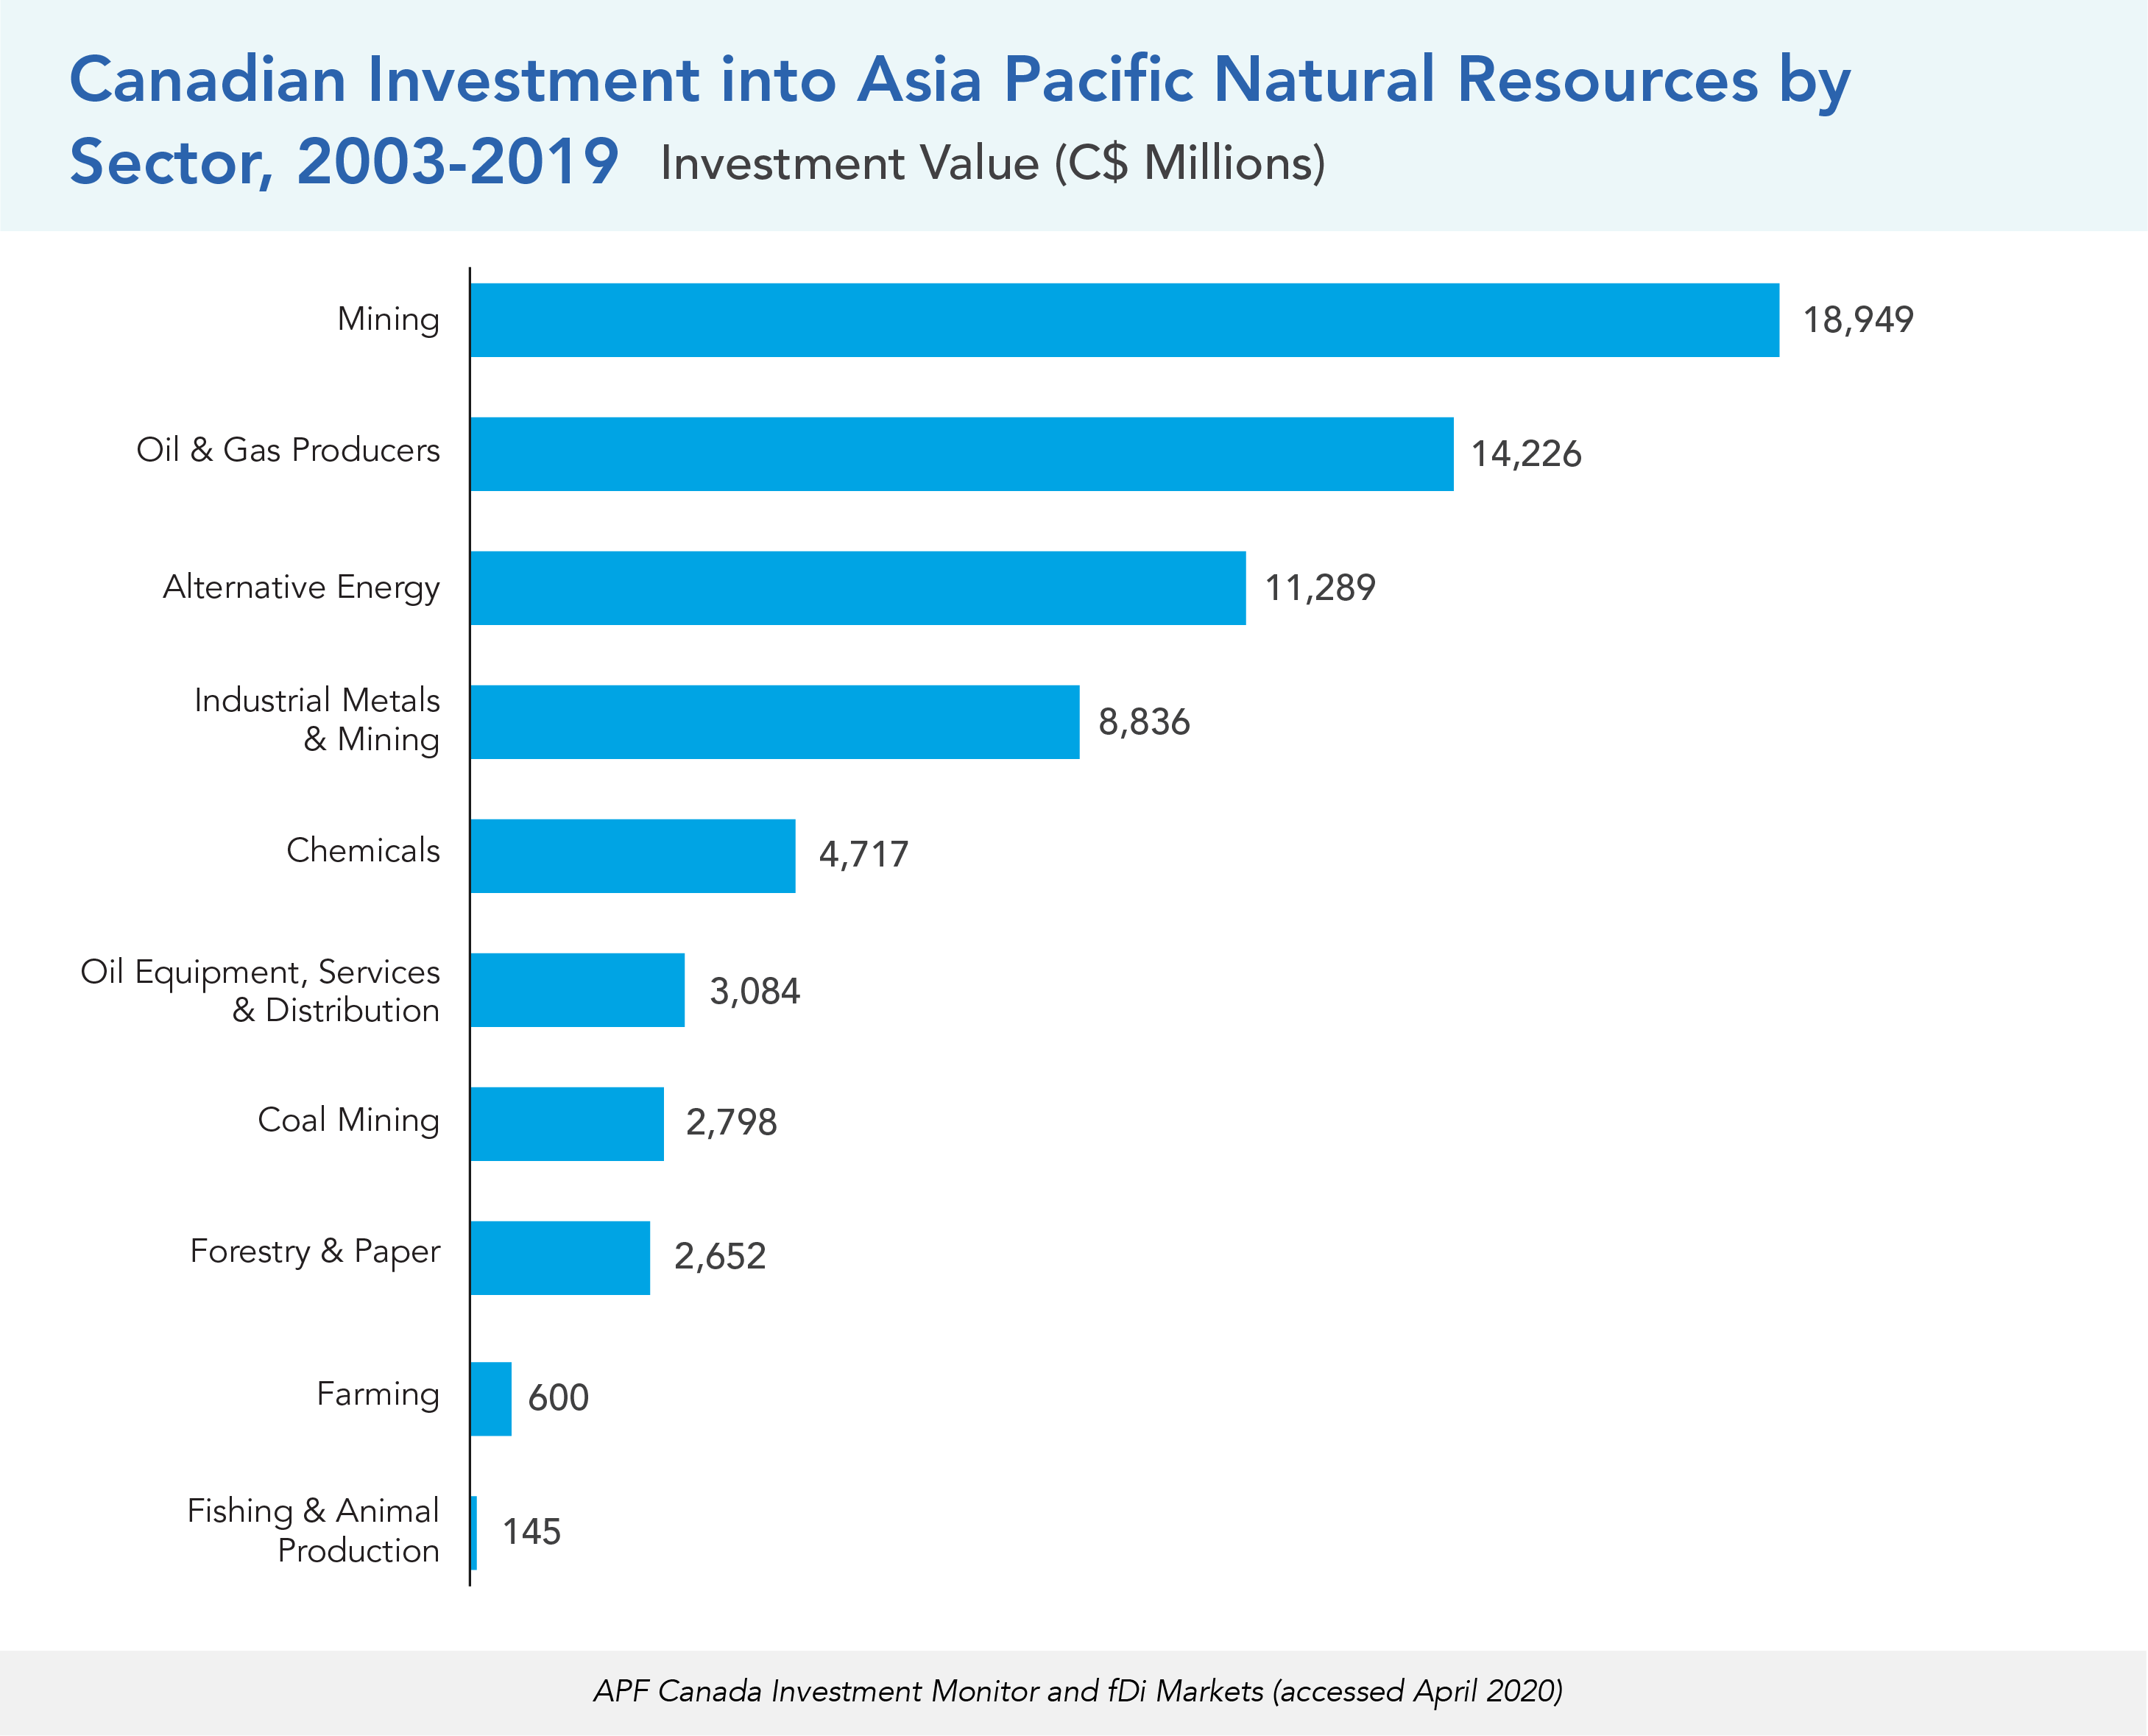 Canadian Investment into Asia Pacific Natural Resources by Sector, 2003-2019